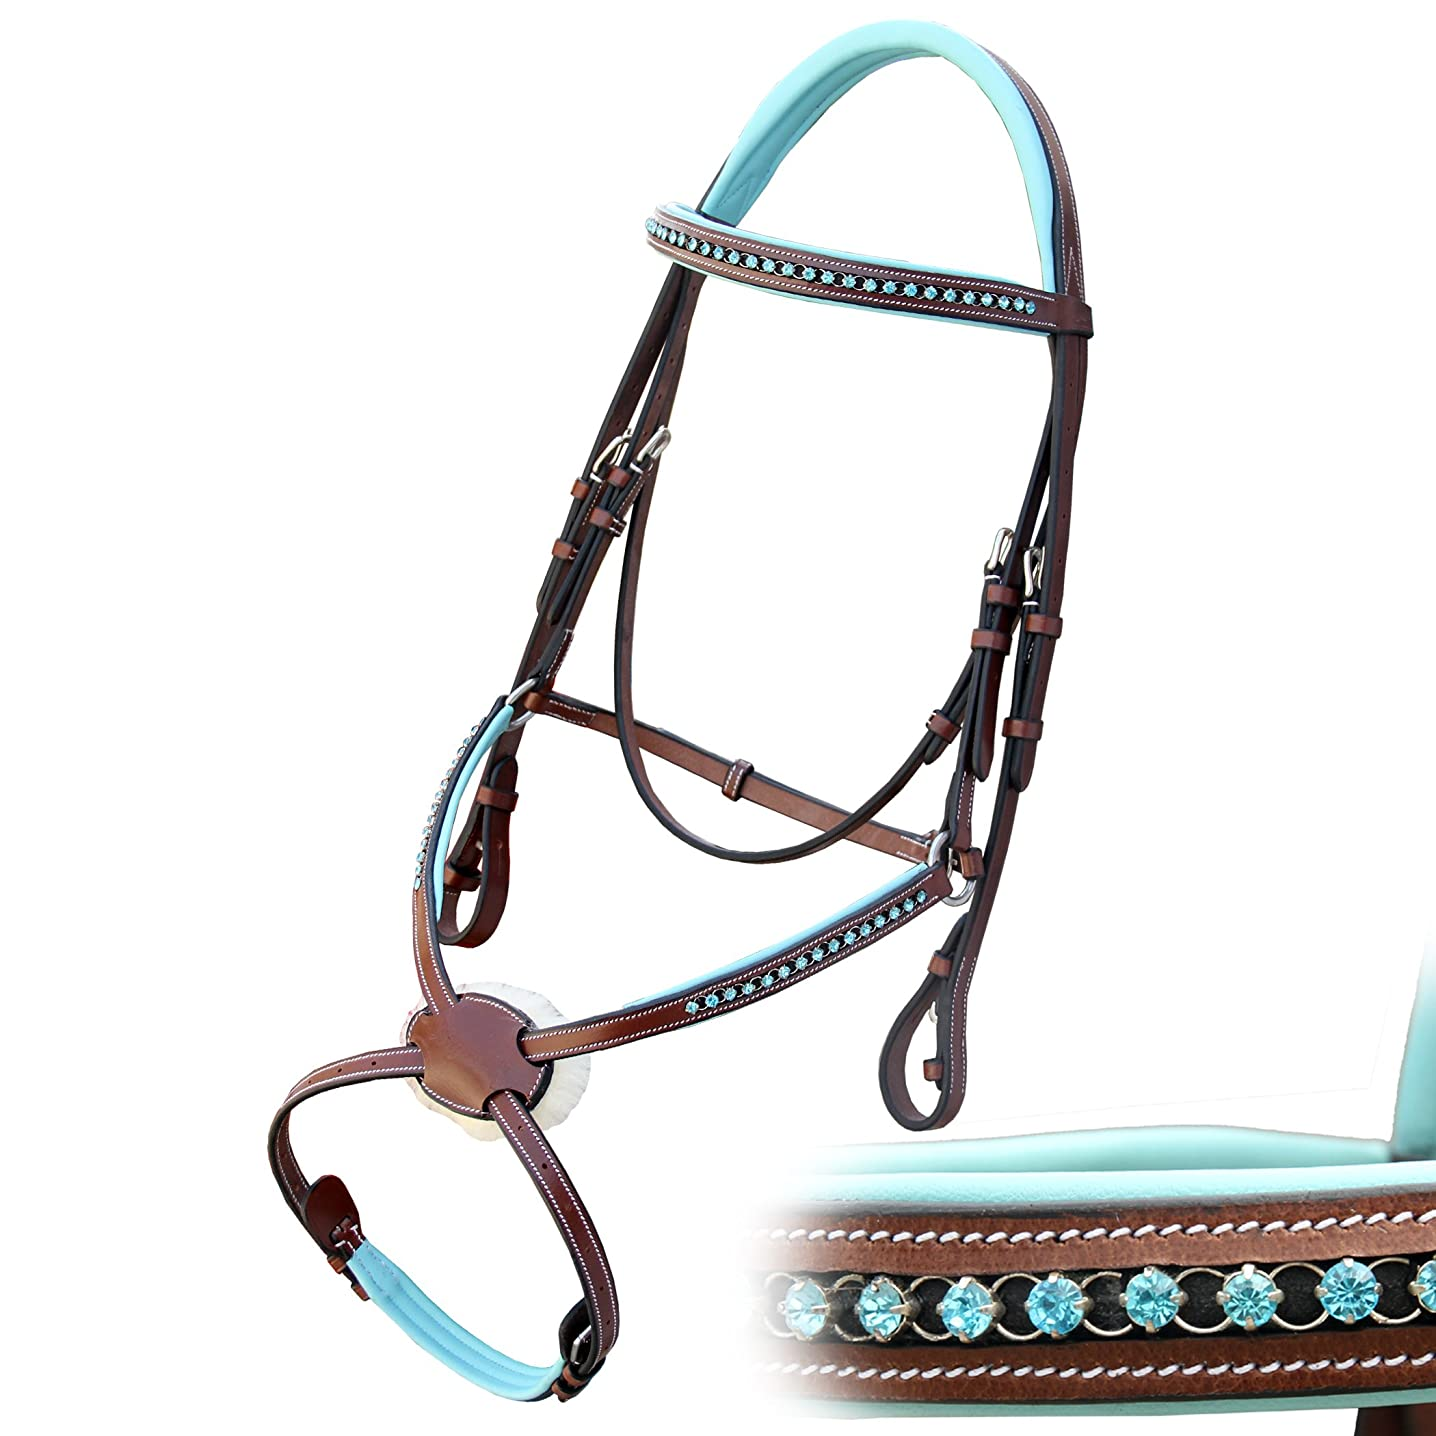 Exion Blue Round Ring Diamond Figure 8 Leather Bridle with PP Rubber Grip Reins and Stainless Steel Buckles | Equestrian Show Jumping Padded Bridle Set | English Horse Riding Premium Tack